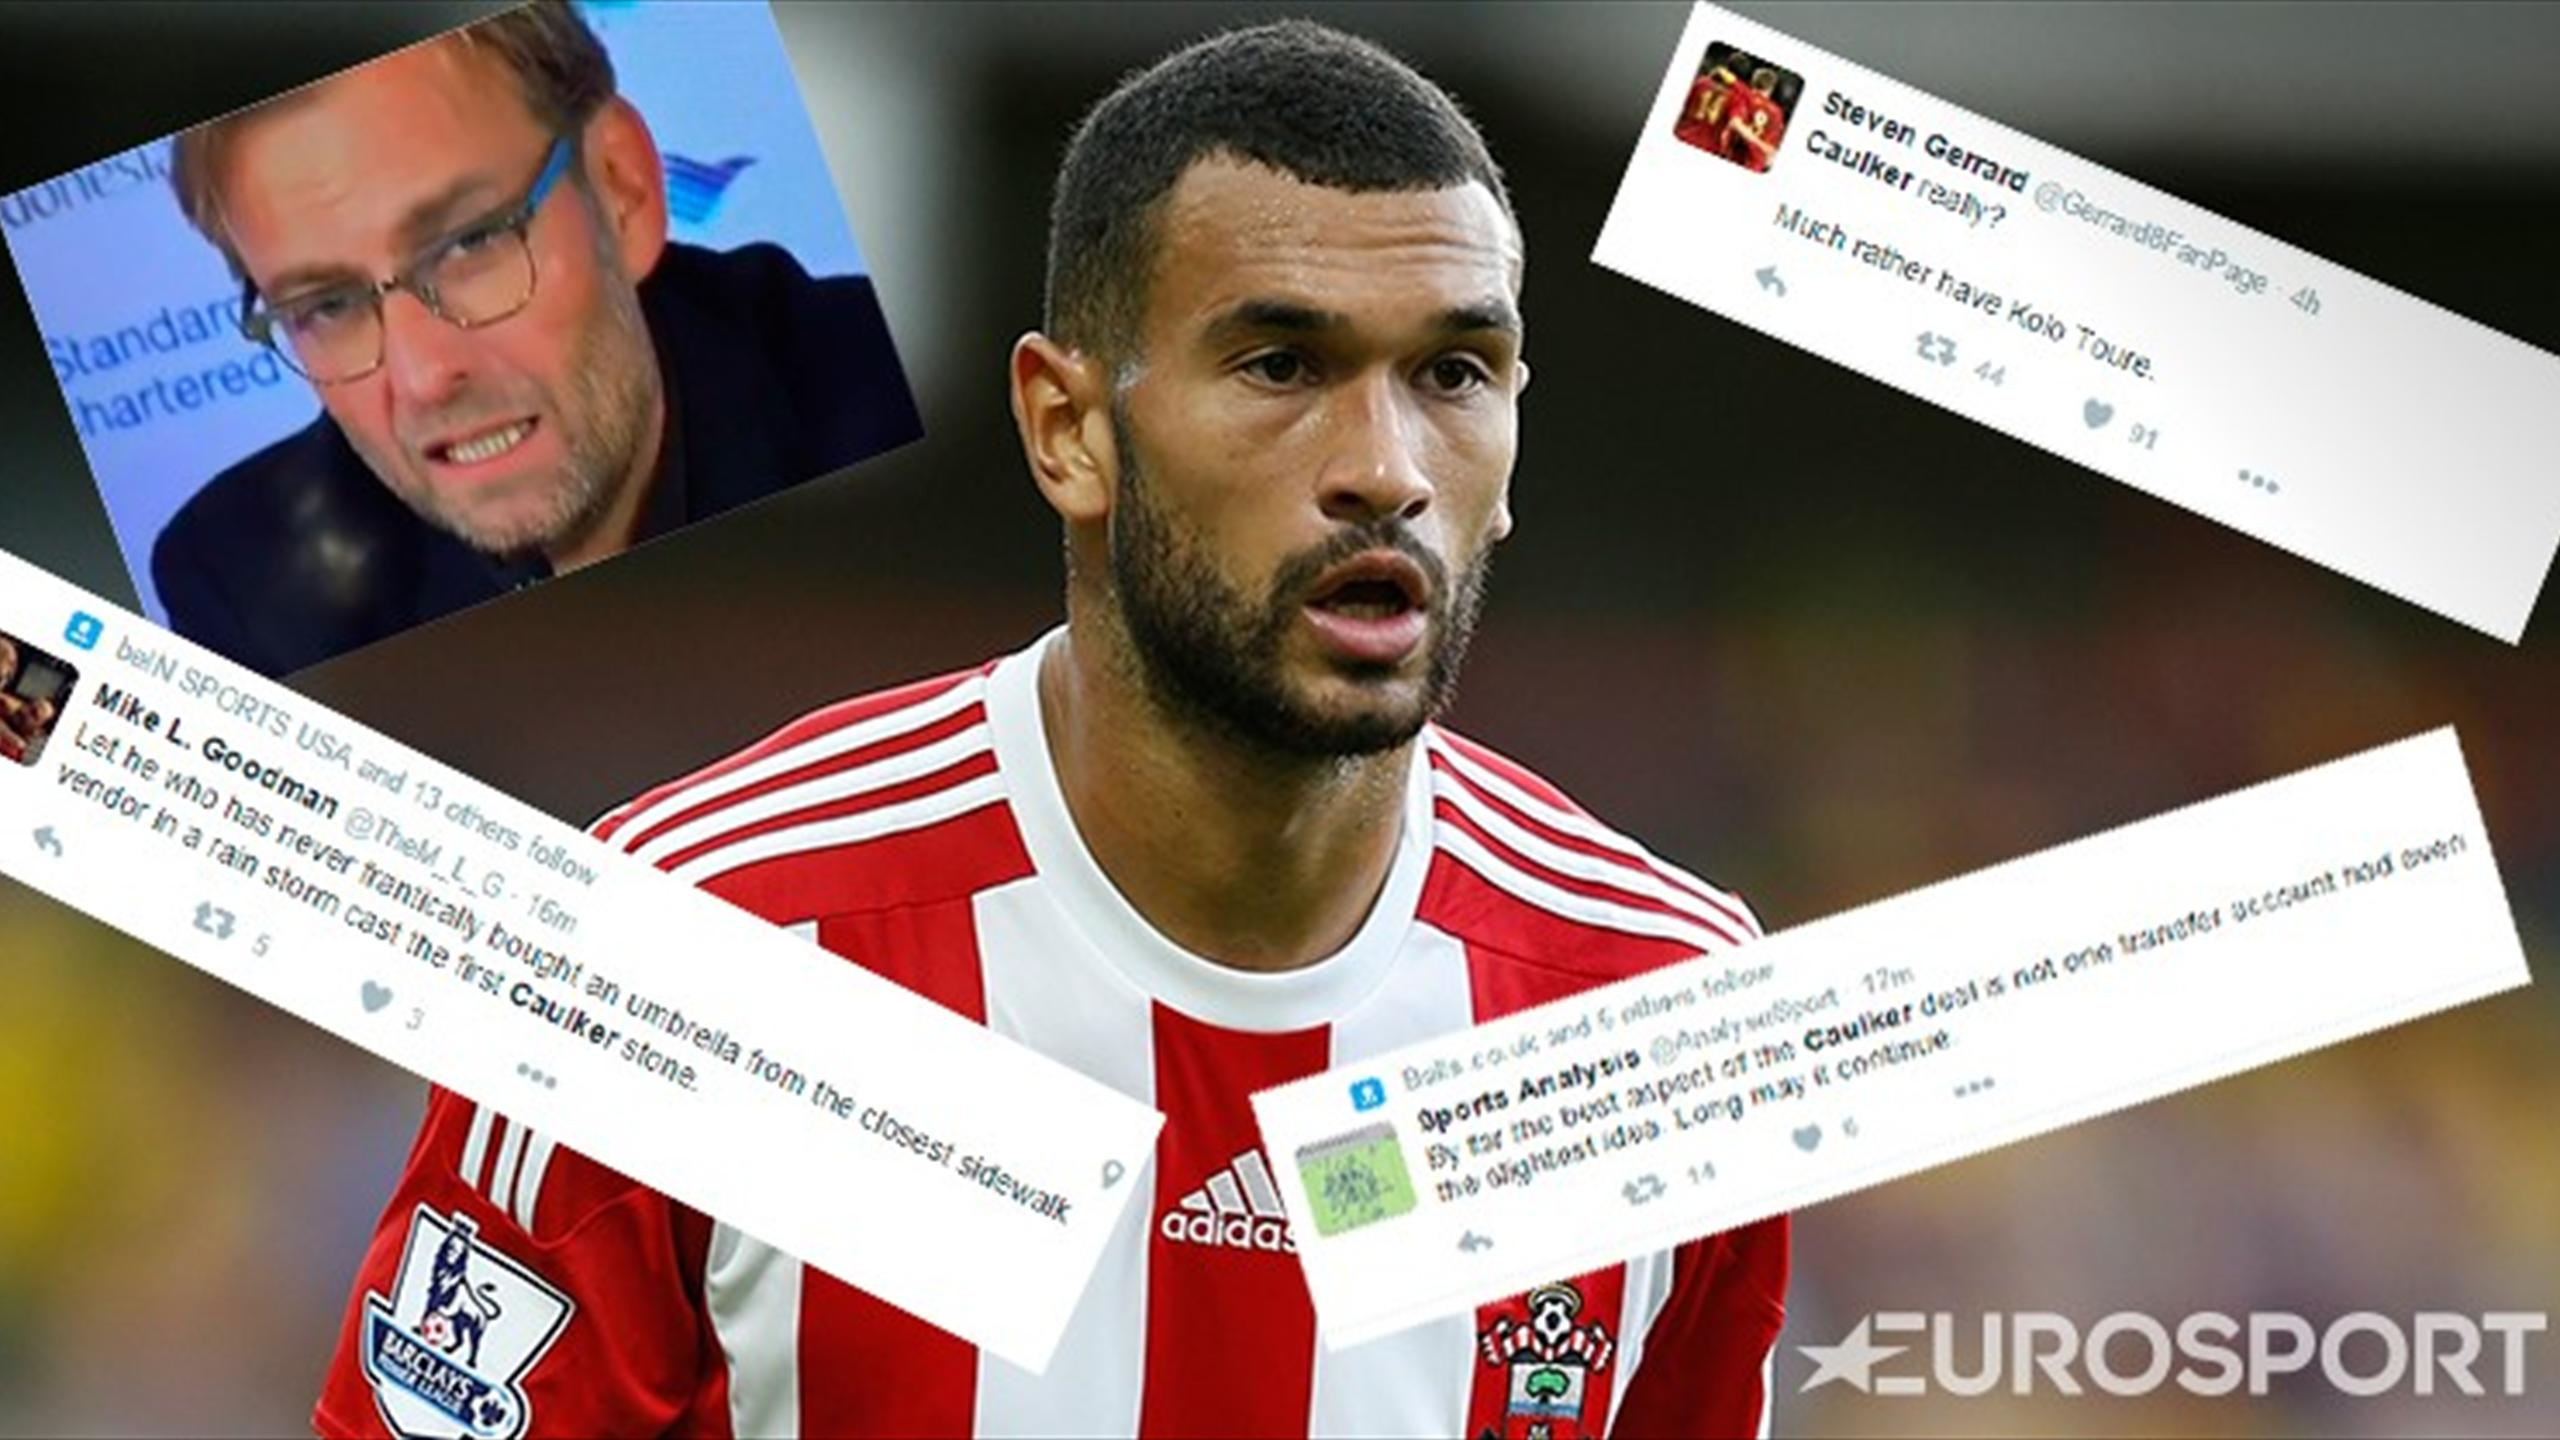 Steven Caulker joins Liverpool and fans are not happy (Twitter)